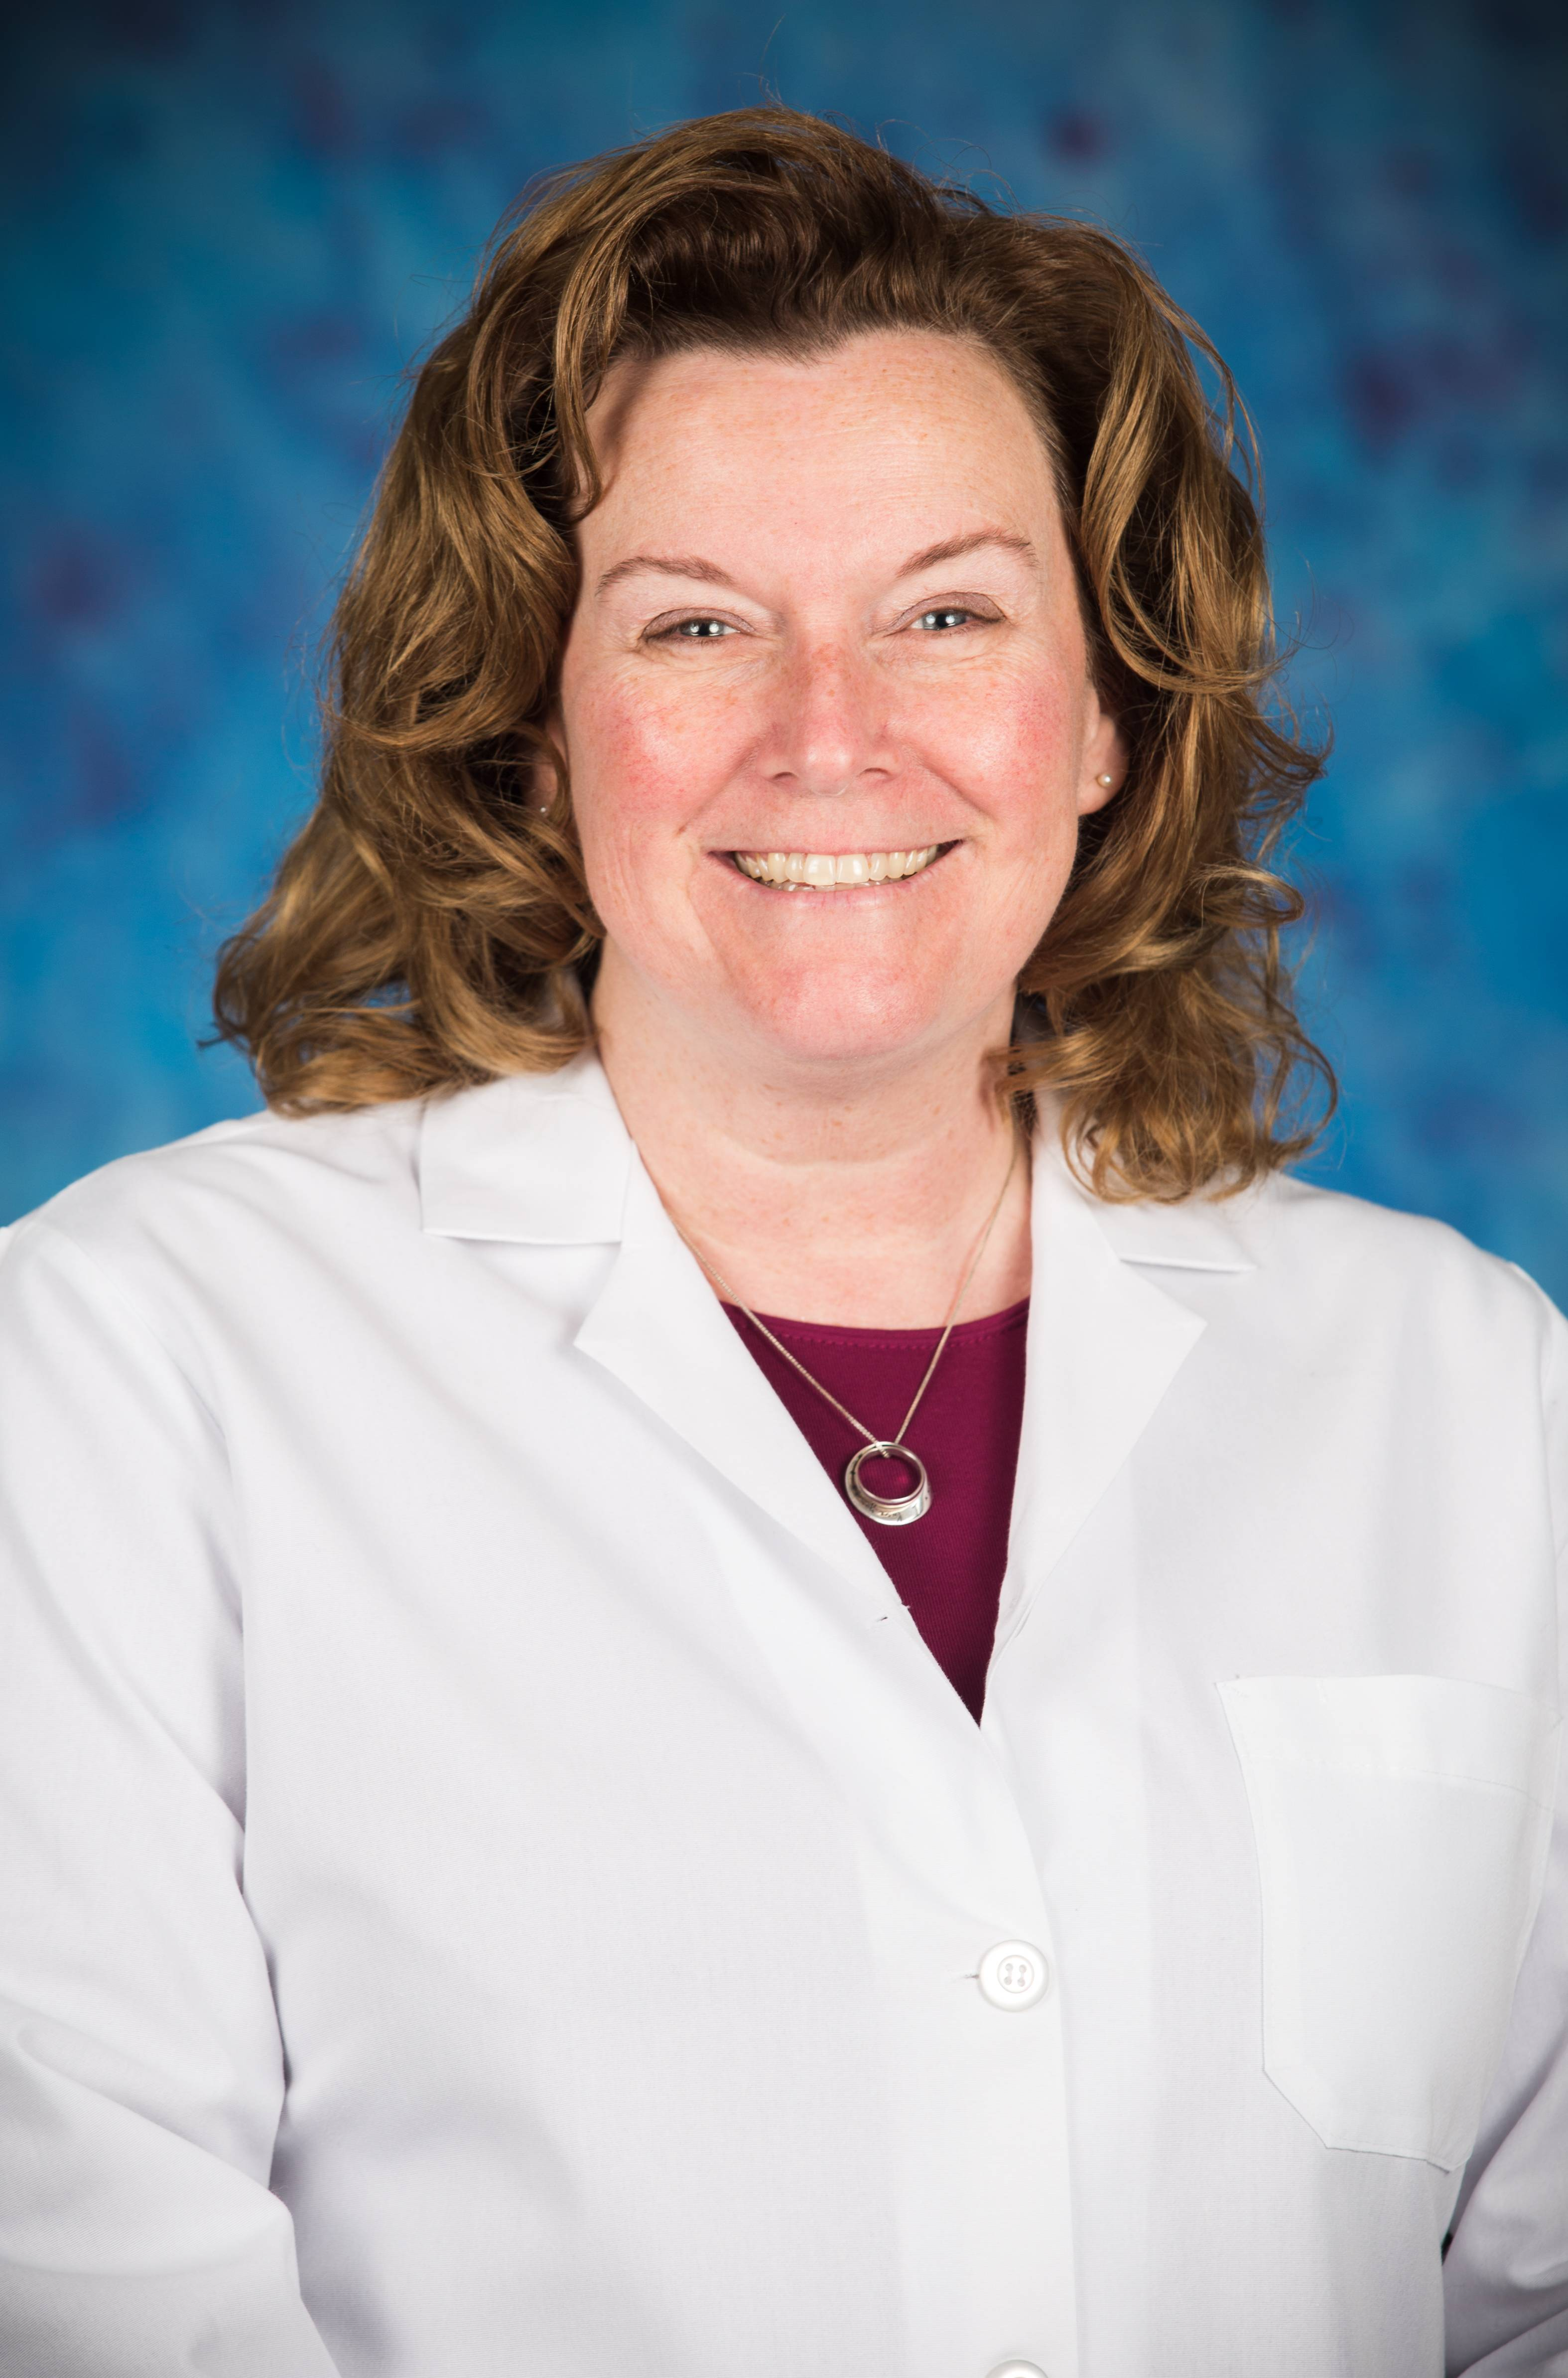 Dr. Susan Beth Frommeyer, MD